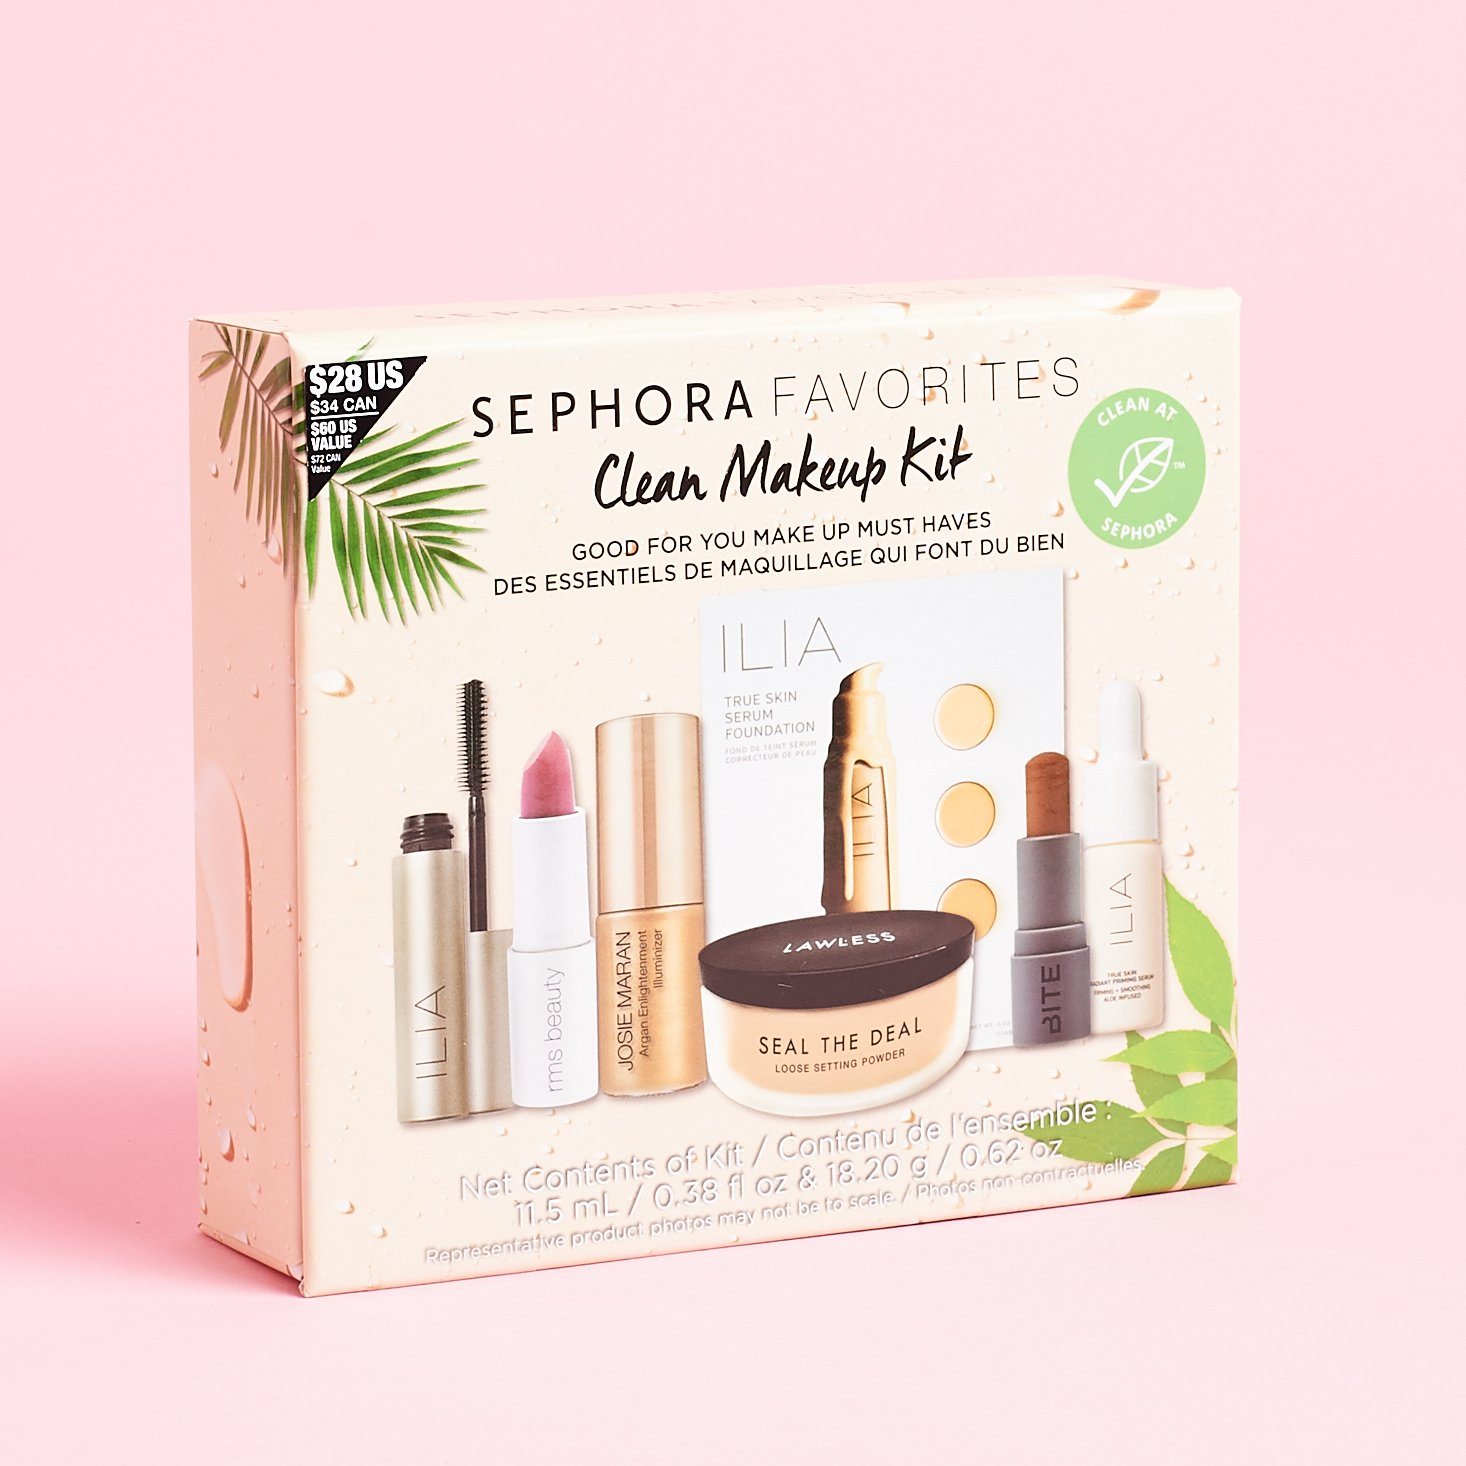 Sephora Favorites Clean Makeup Kit Review- July 2019